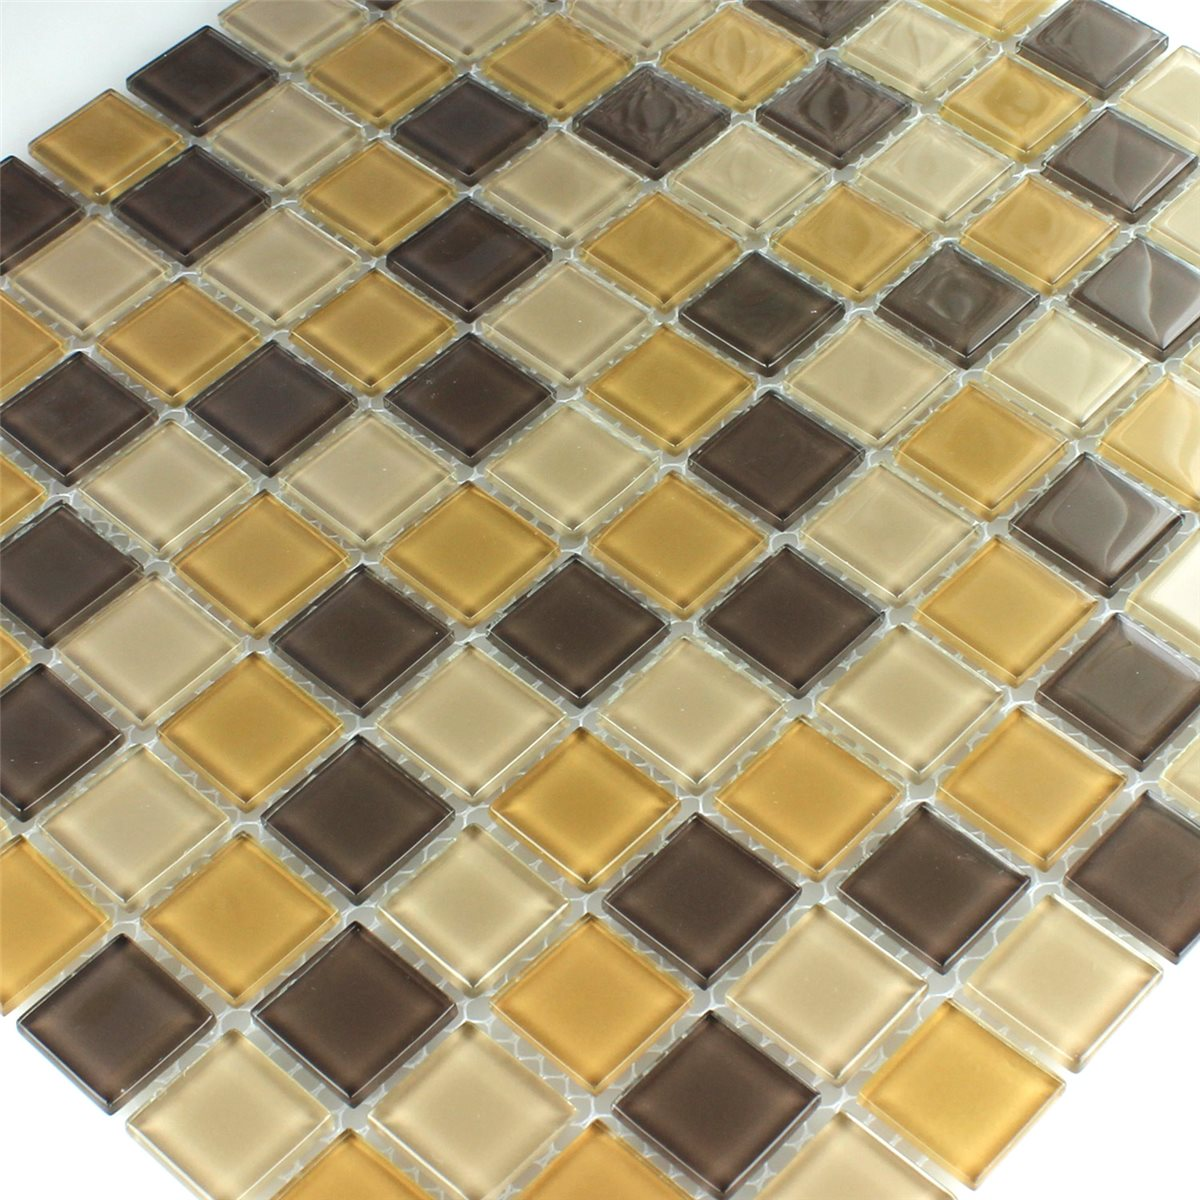 glass mosaic tiles brown mix 25x25x4mm. Black Bedroom Furniture Sets. Home Design Ideas